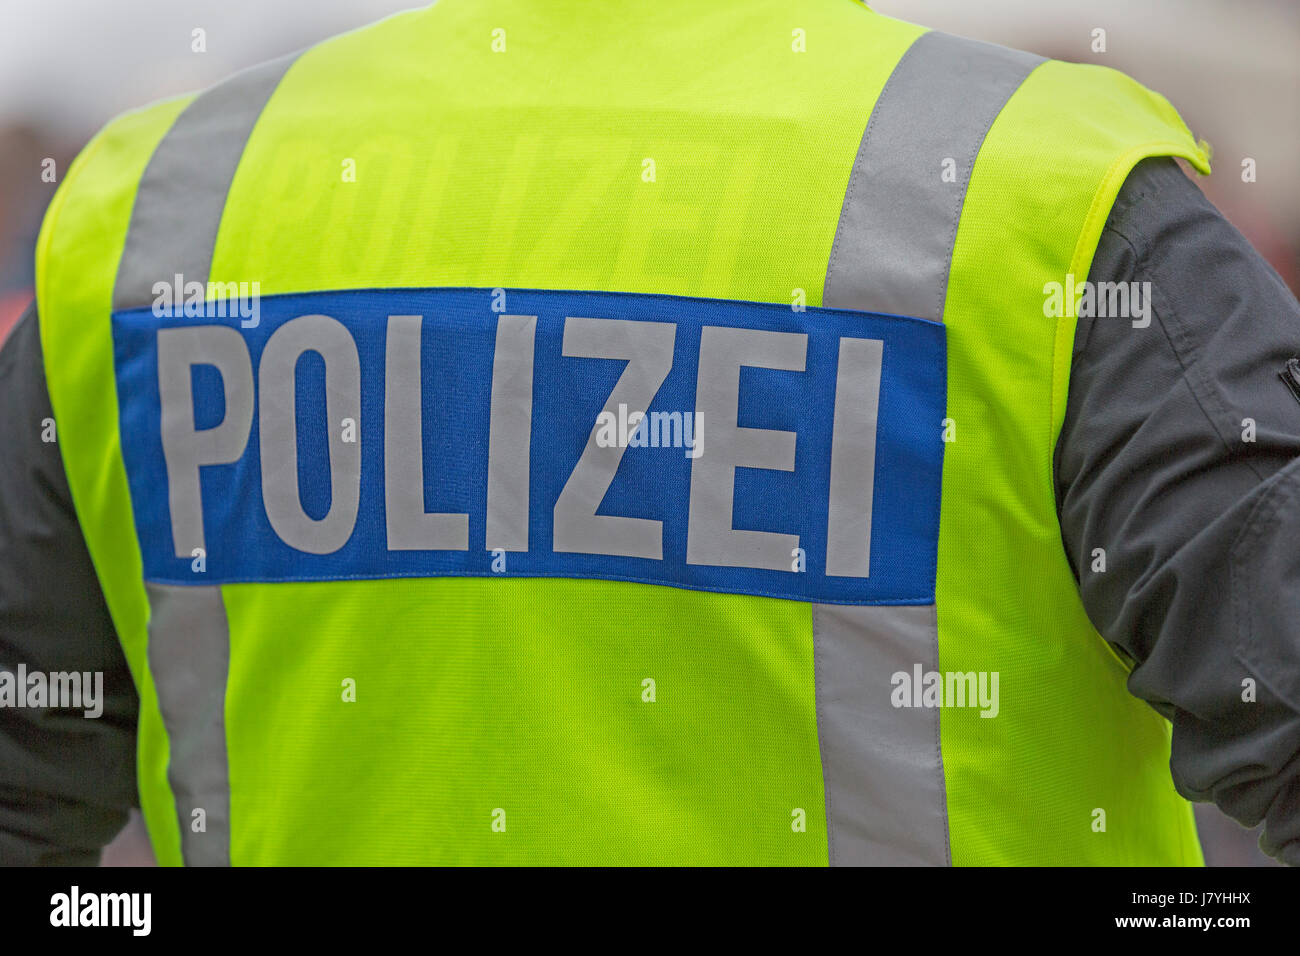 Police officer with warning vest, inscription Polizei, rear view, Germany - Stock Image